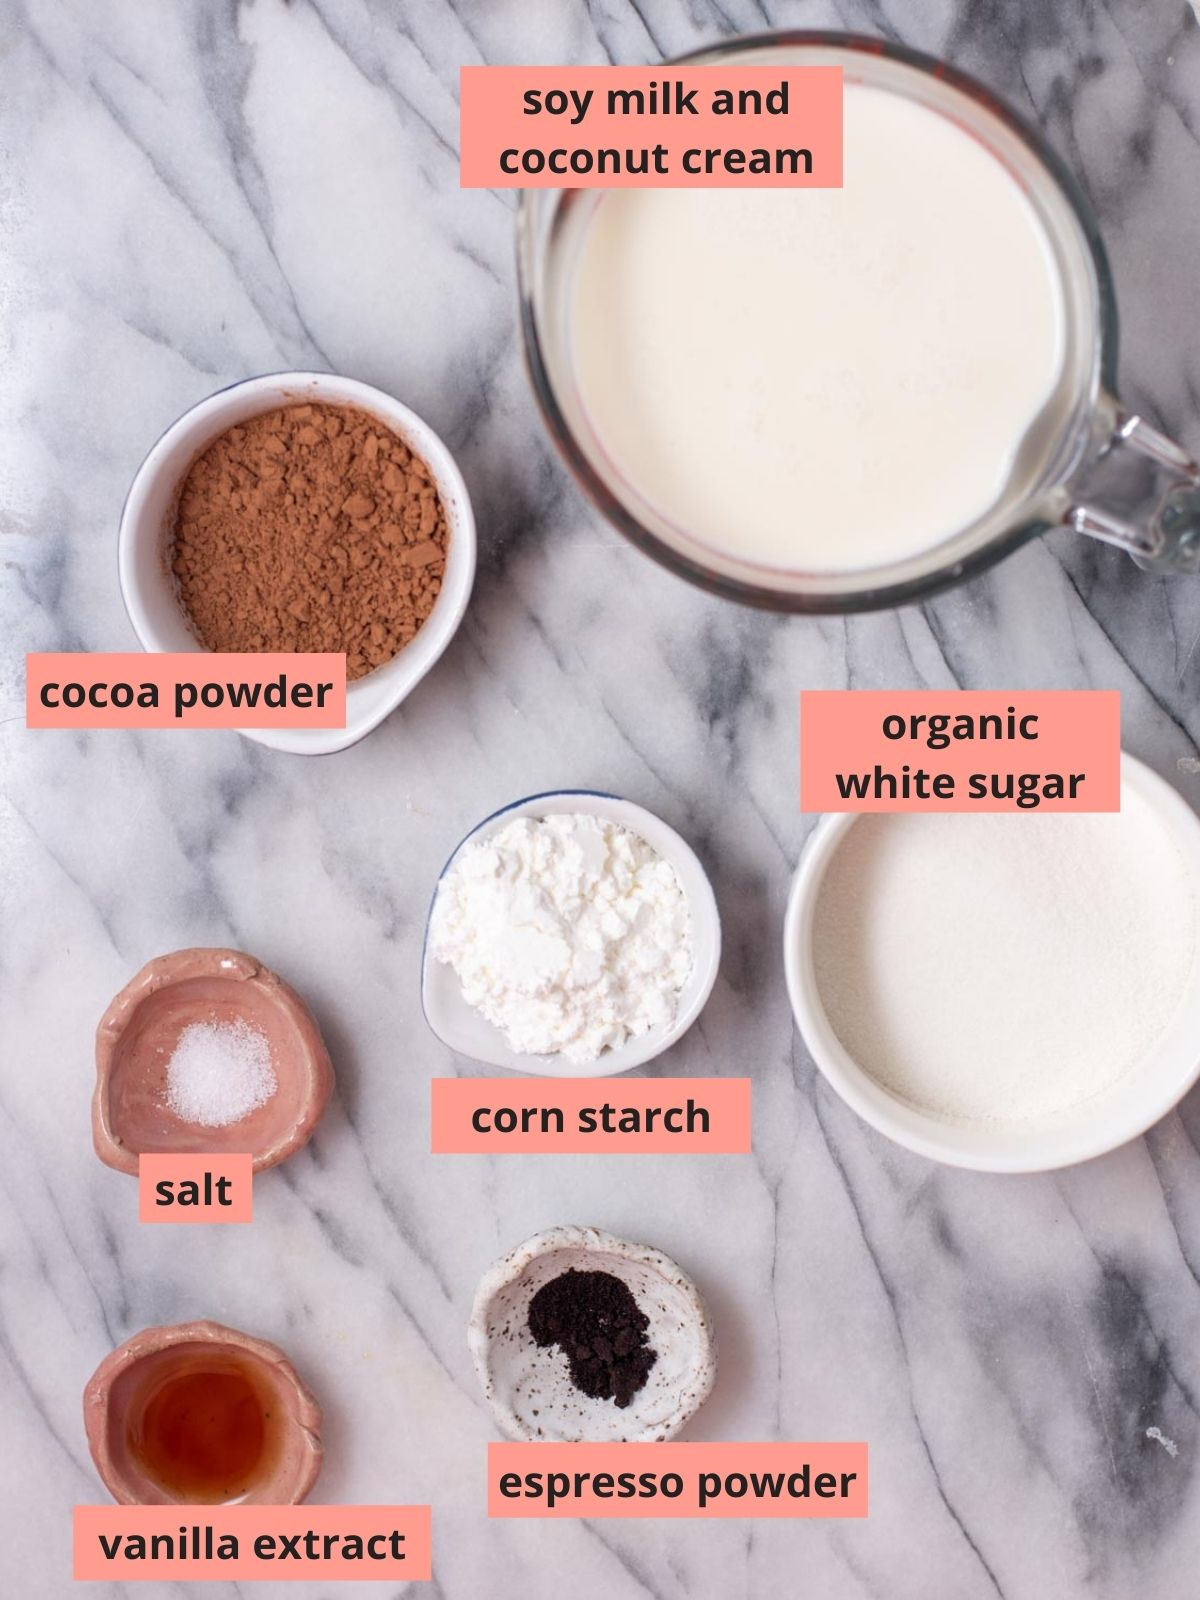 Labeled ingredients used to make chocolate pudding